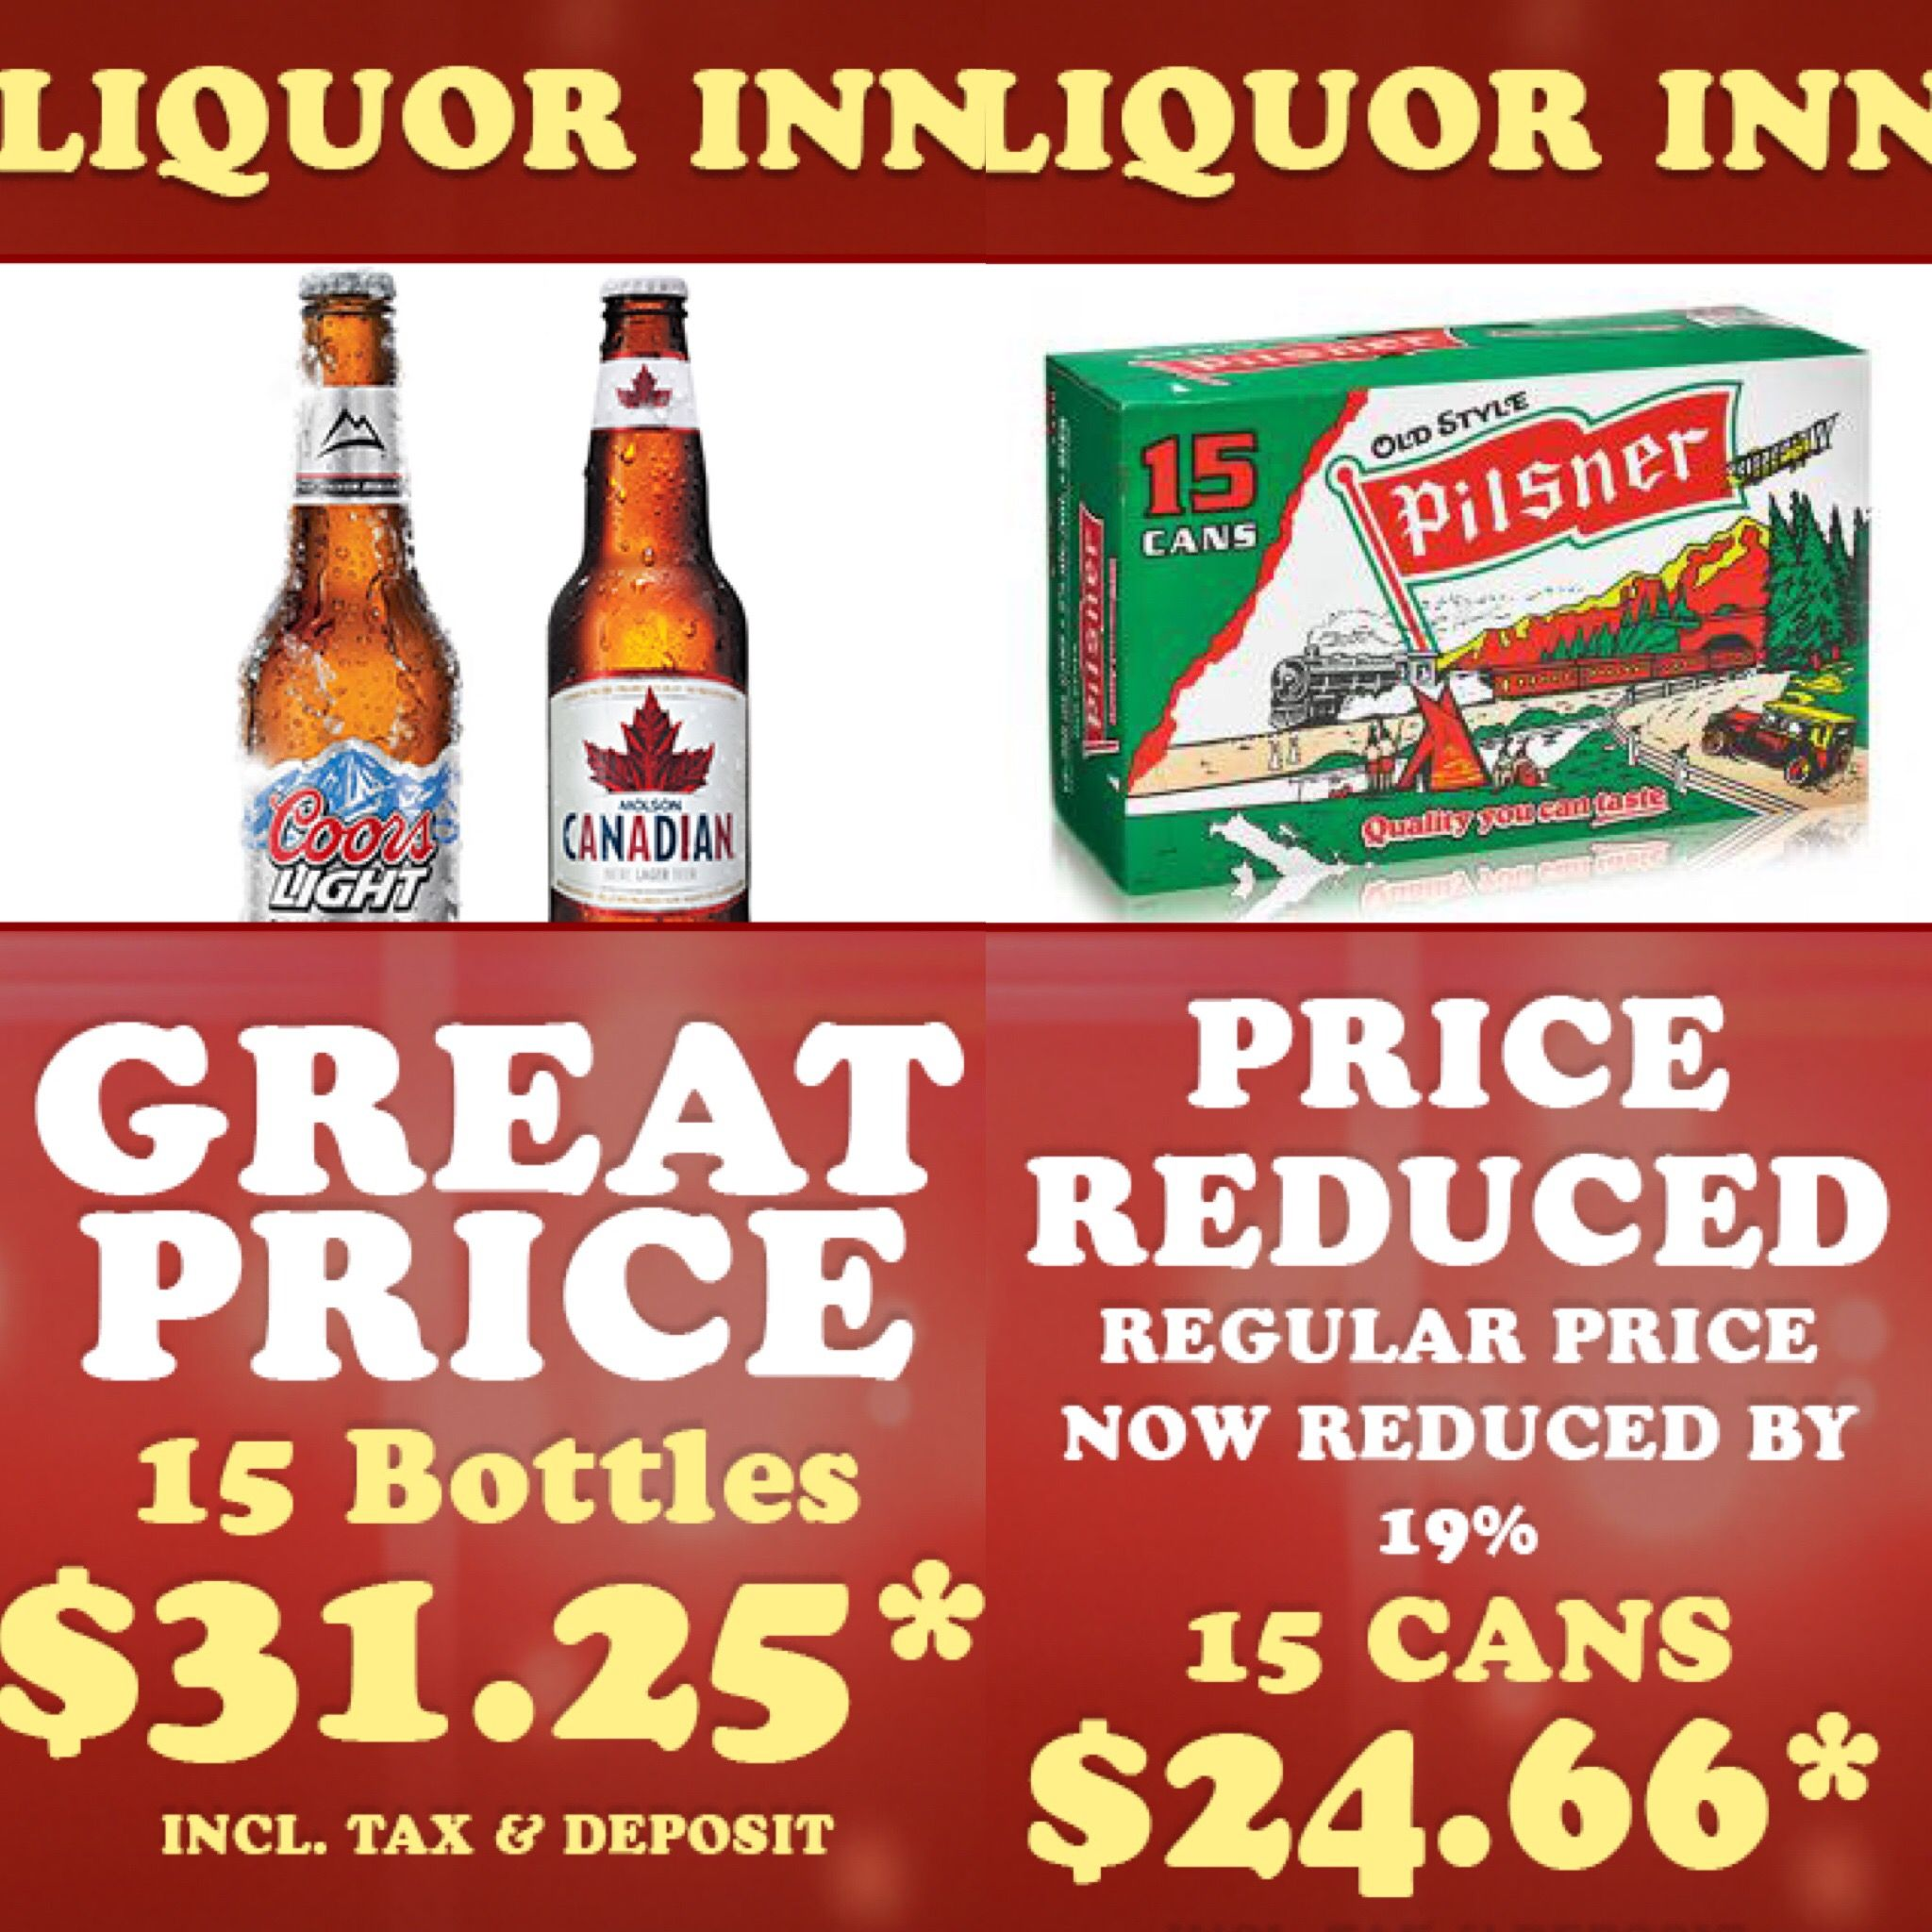 Edmonton Check Out These Awesome Prices That Liquor Inn Has Right Now Liquorinn Ibdmedia Ibd Media Edmonton Liquorstore Liquor Store Liquor Pilsner